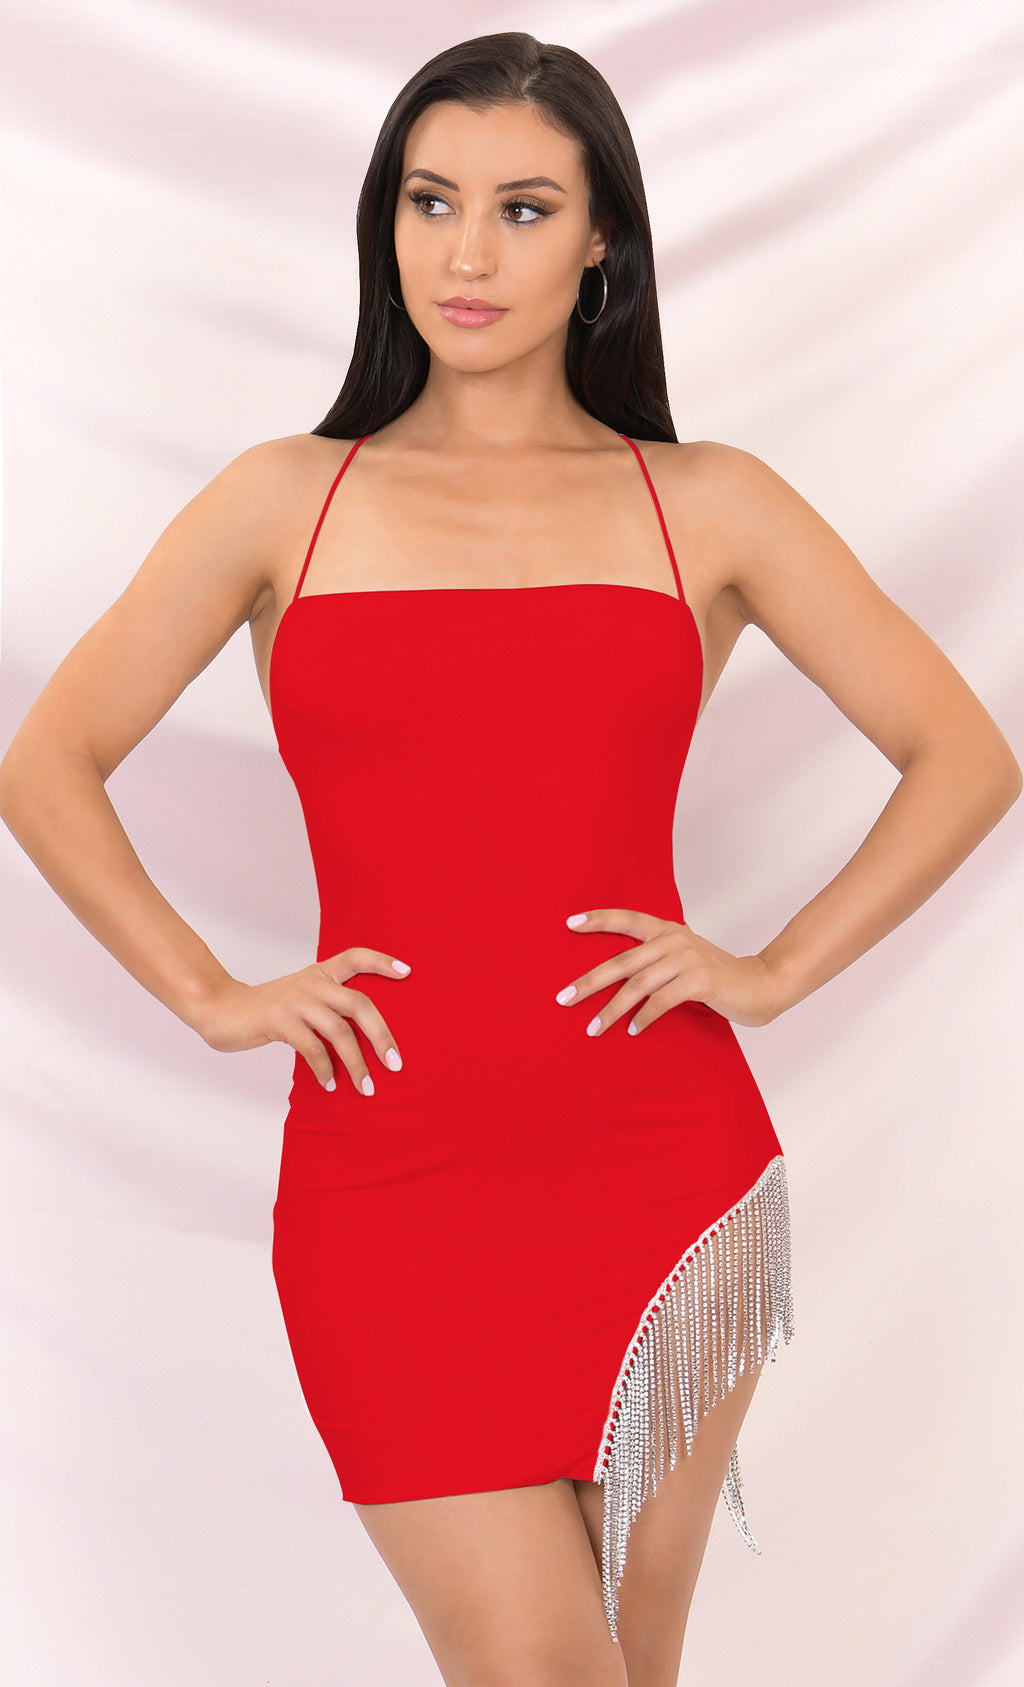 Born to Shine Red Sleeveless Spaghetti Strap Cross Back Rhinestone Fringe Cut Out Bodycon Mini Dress - 3 Colors Available